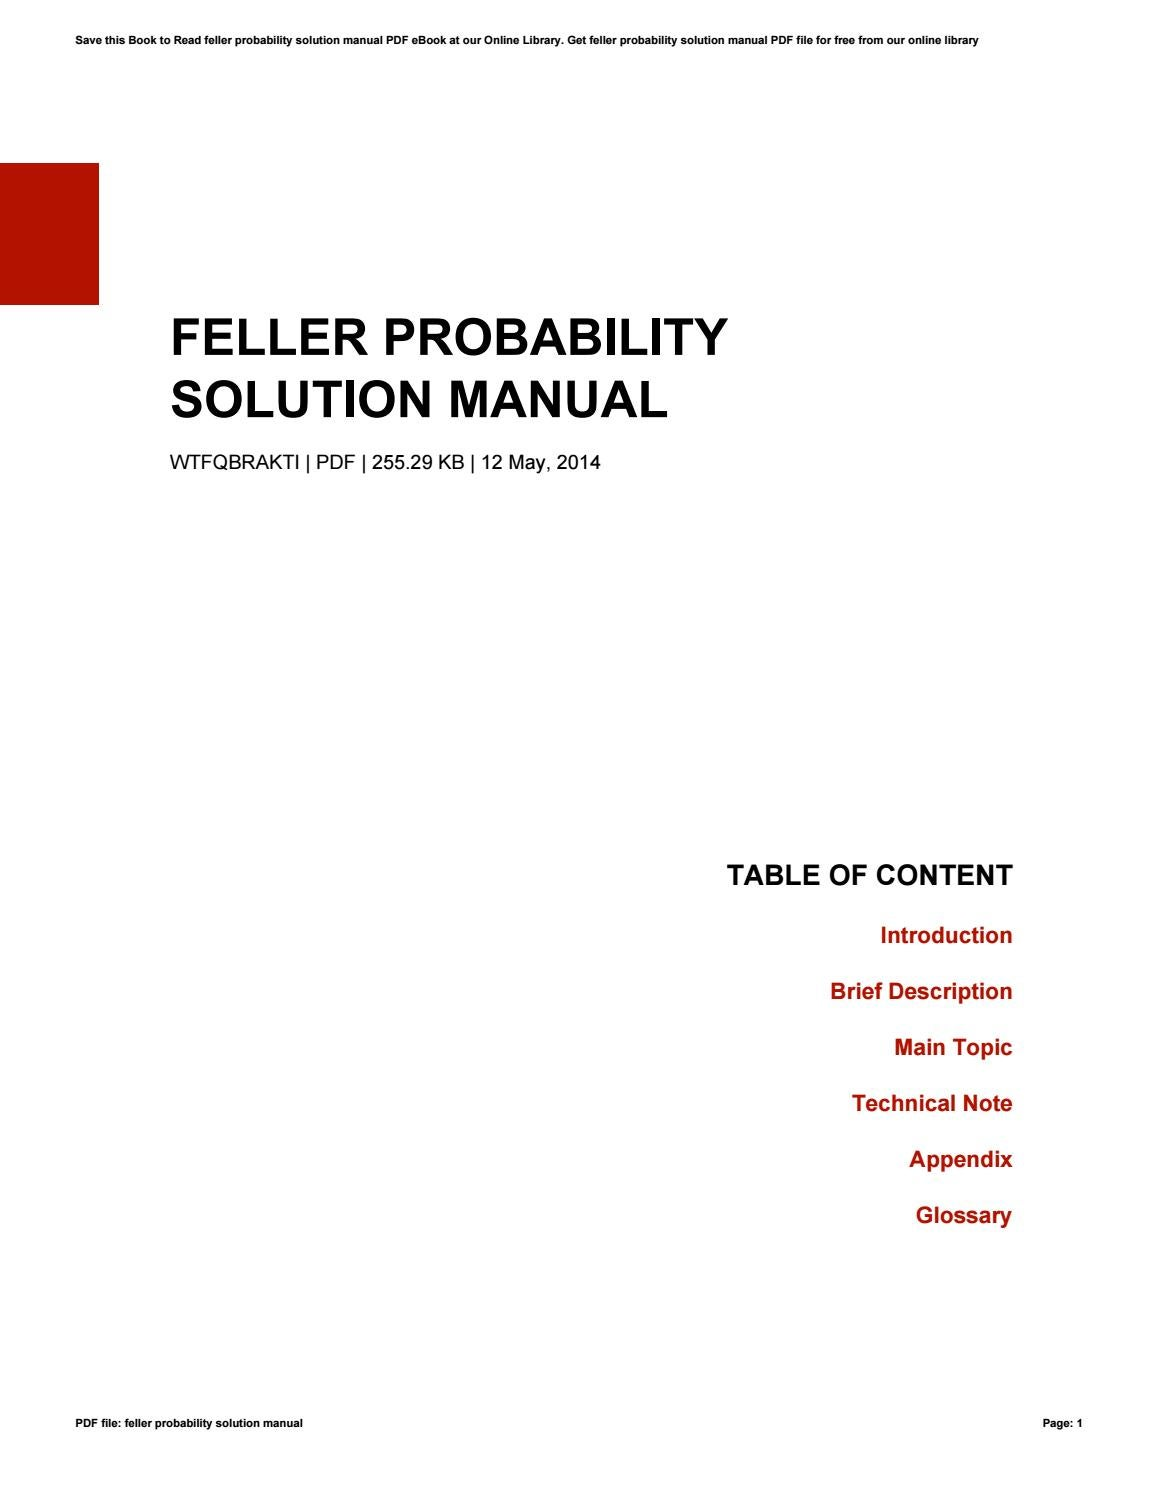 feller probability solution manual by aaronjohnson2554 issuu rh issuu com Probability and Statistics Conditional Probability Examples